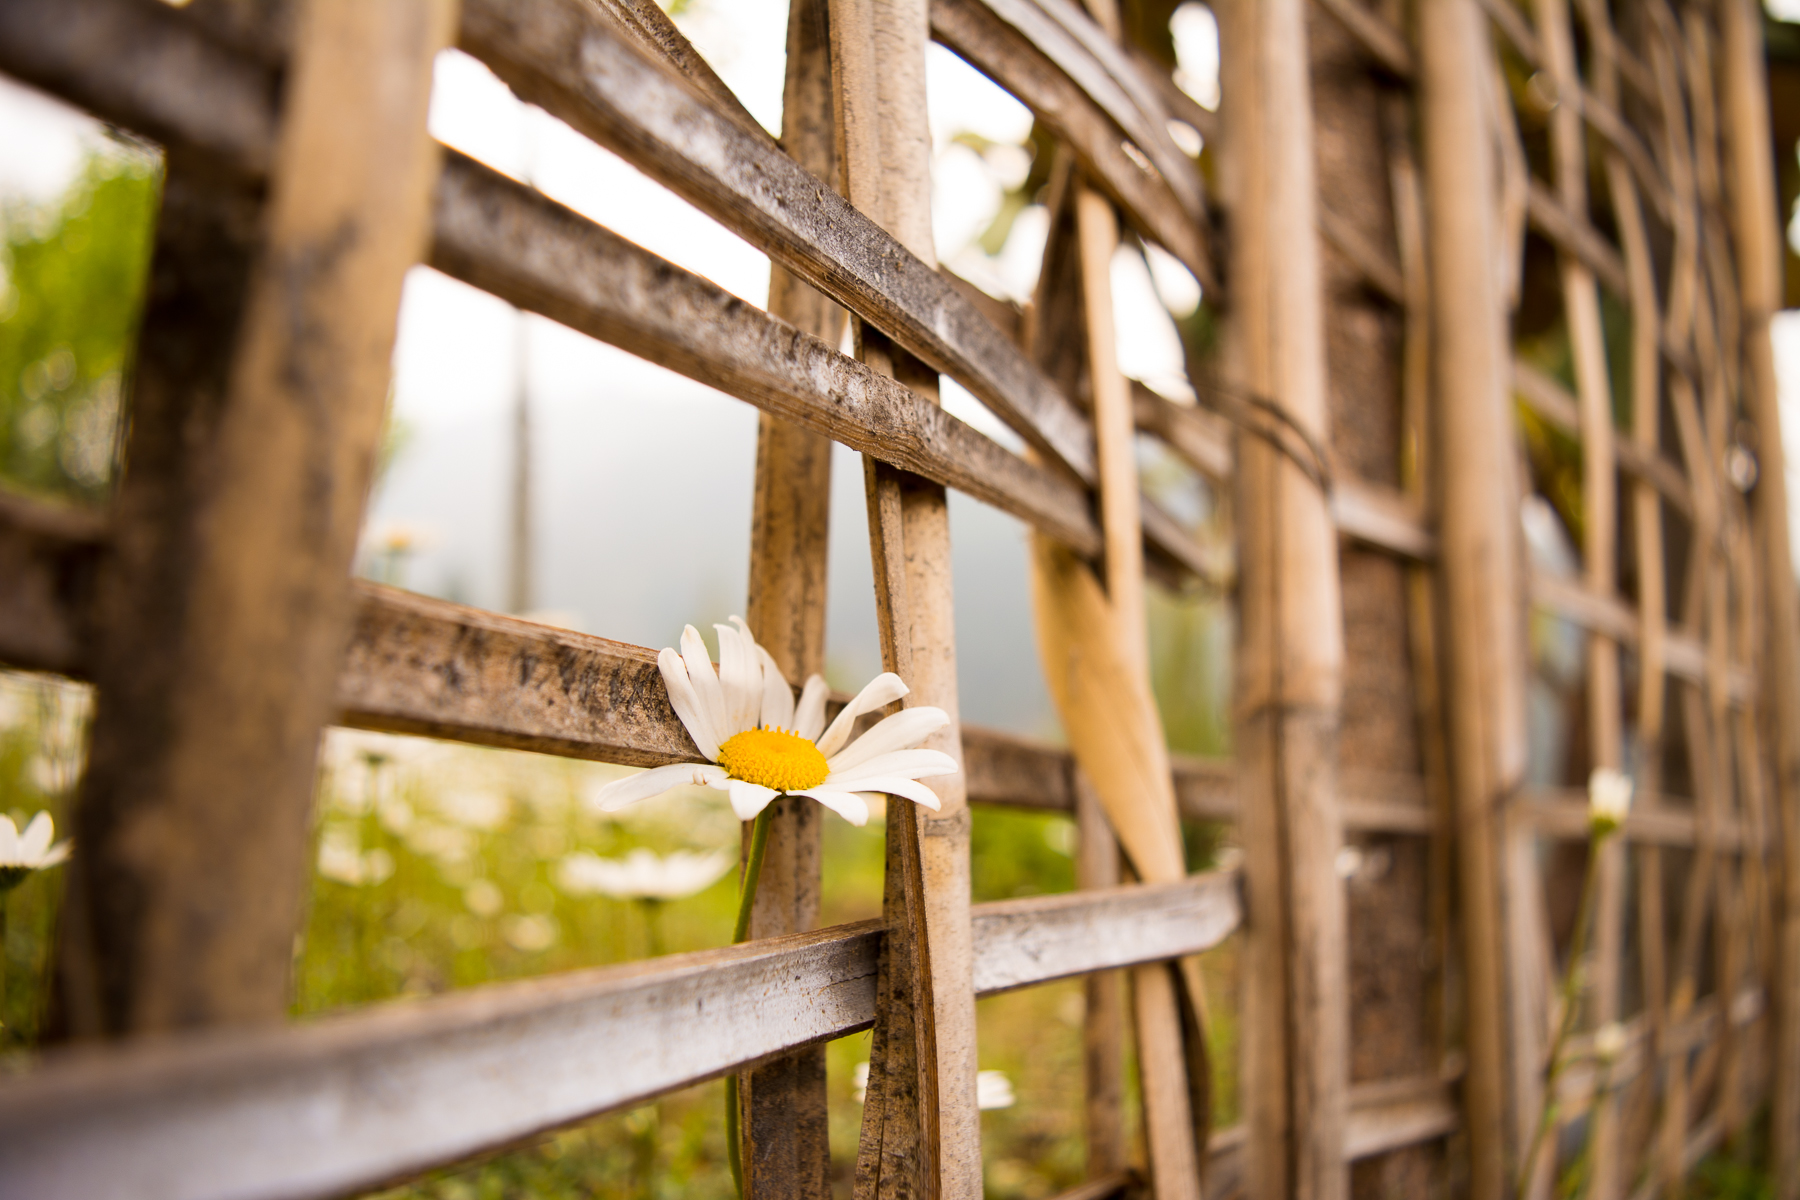 I was on a trek to Sandakphu, Darjeeling and I saw this little flower peeping out from the barricades. It reflects the graceful triumph of a living being.